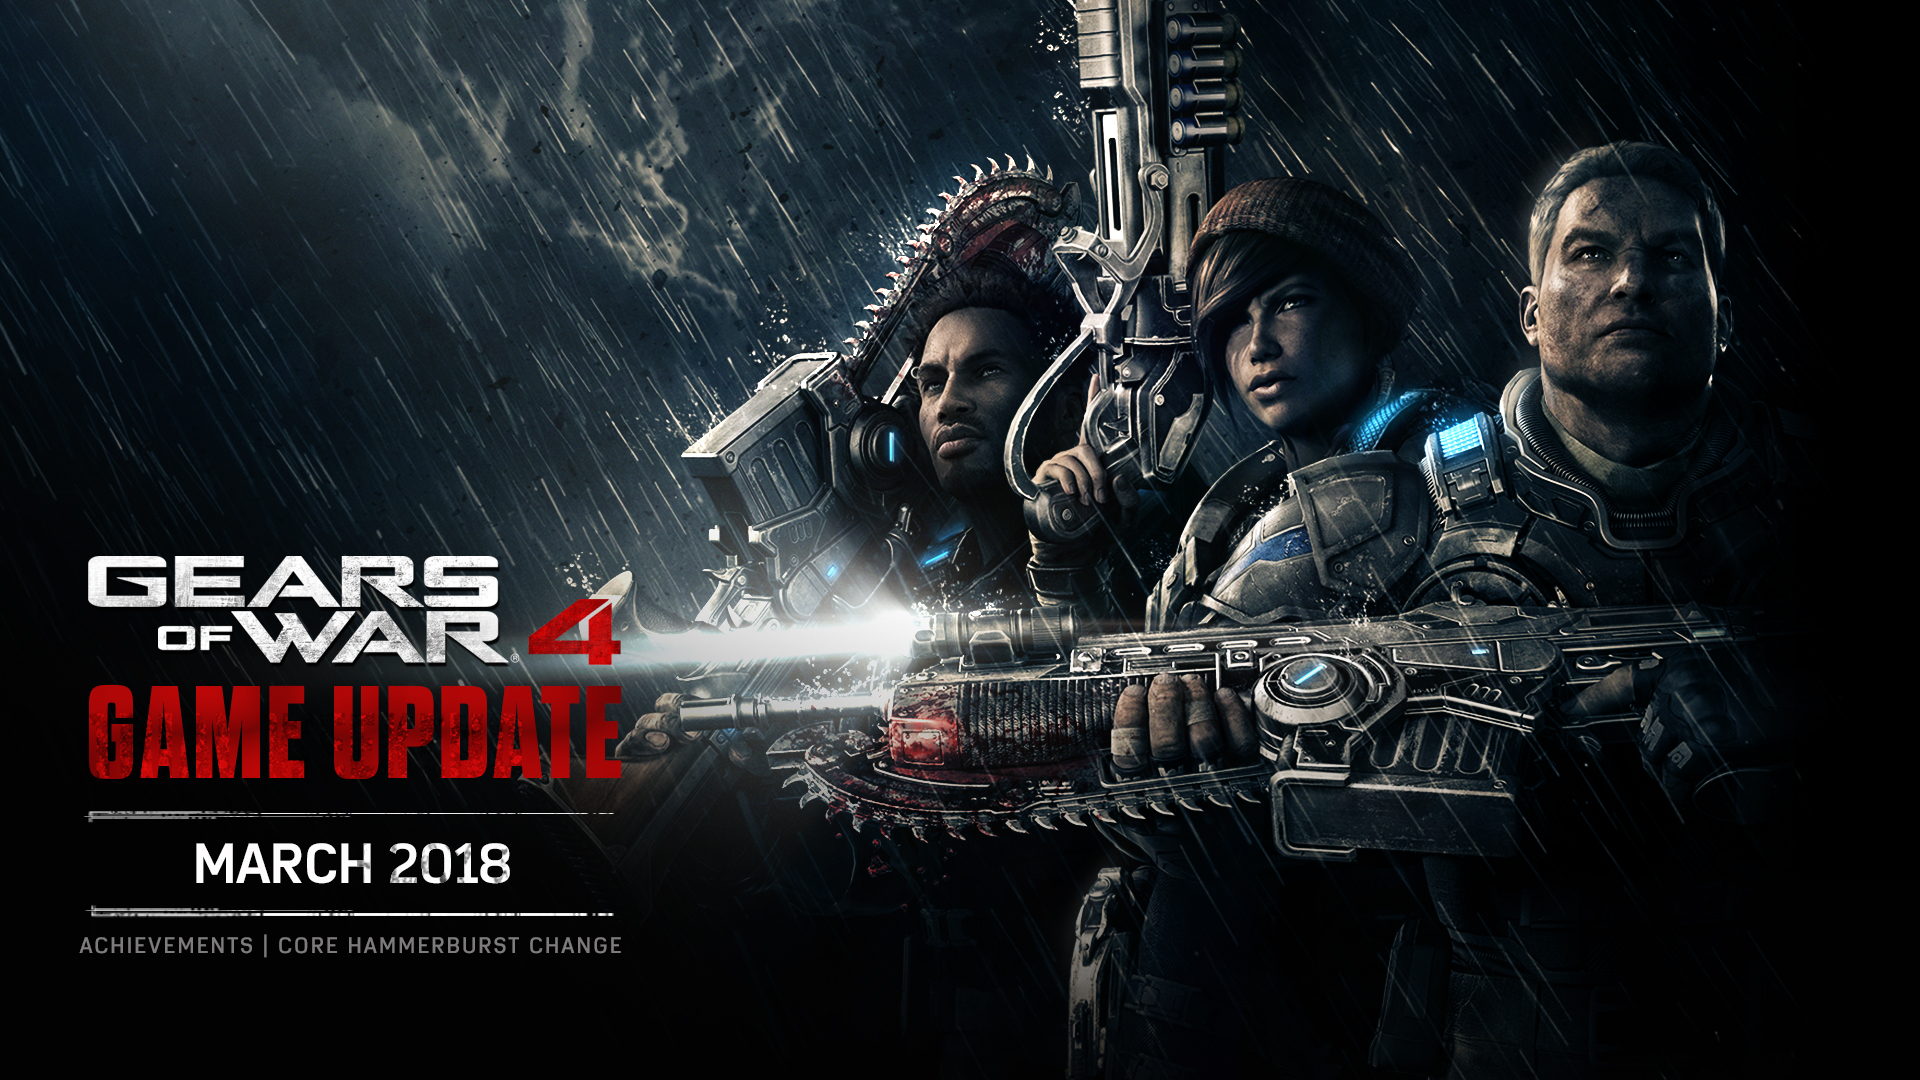 gears4_march18_1080-6ace97493ce74a0ab775